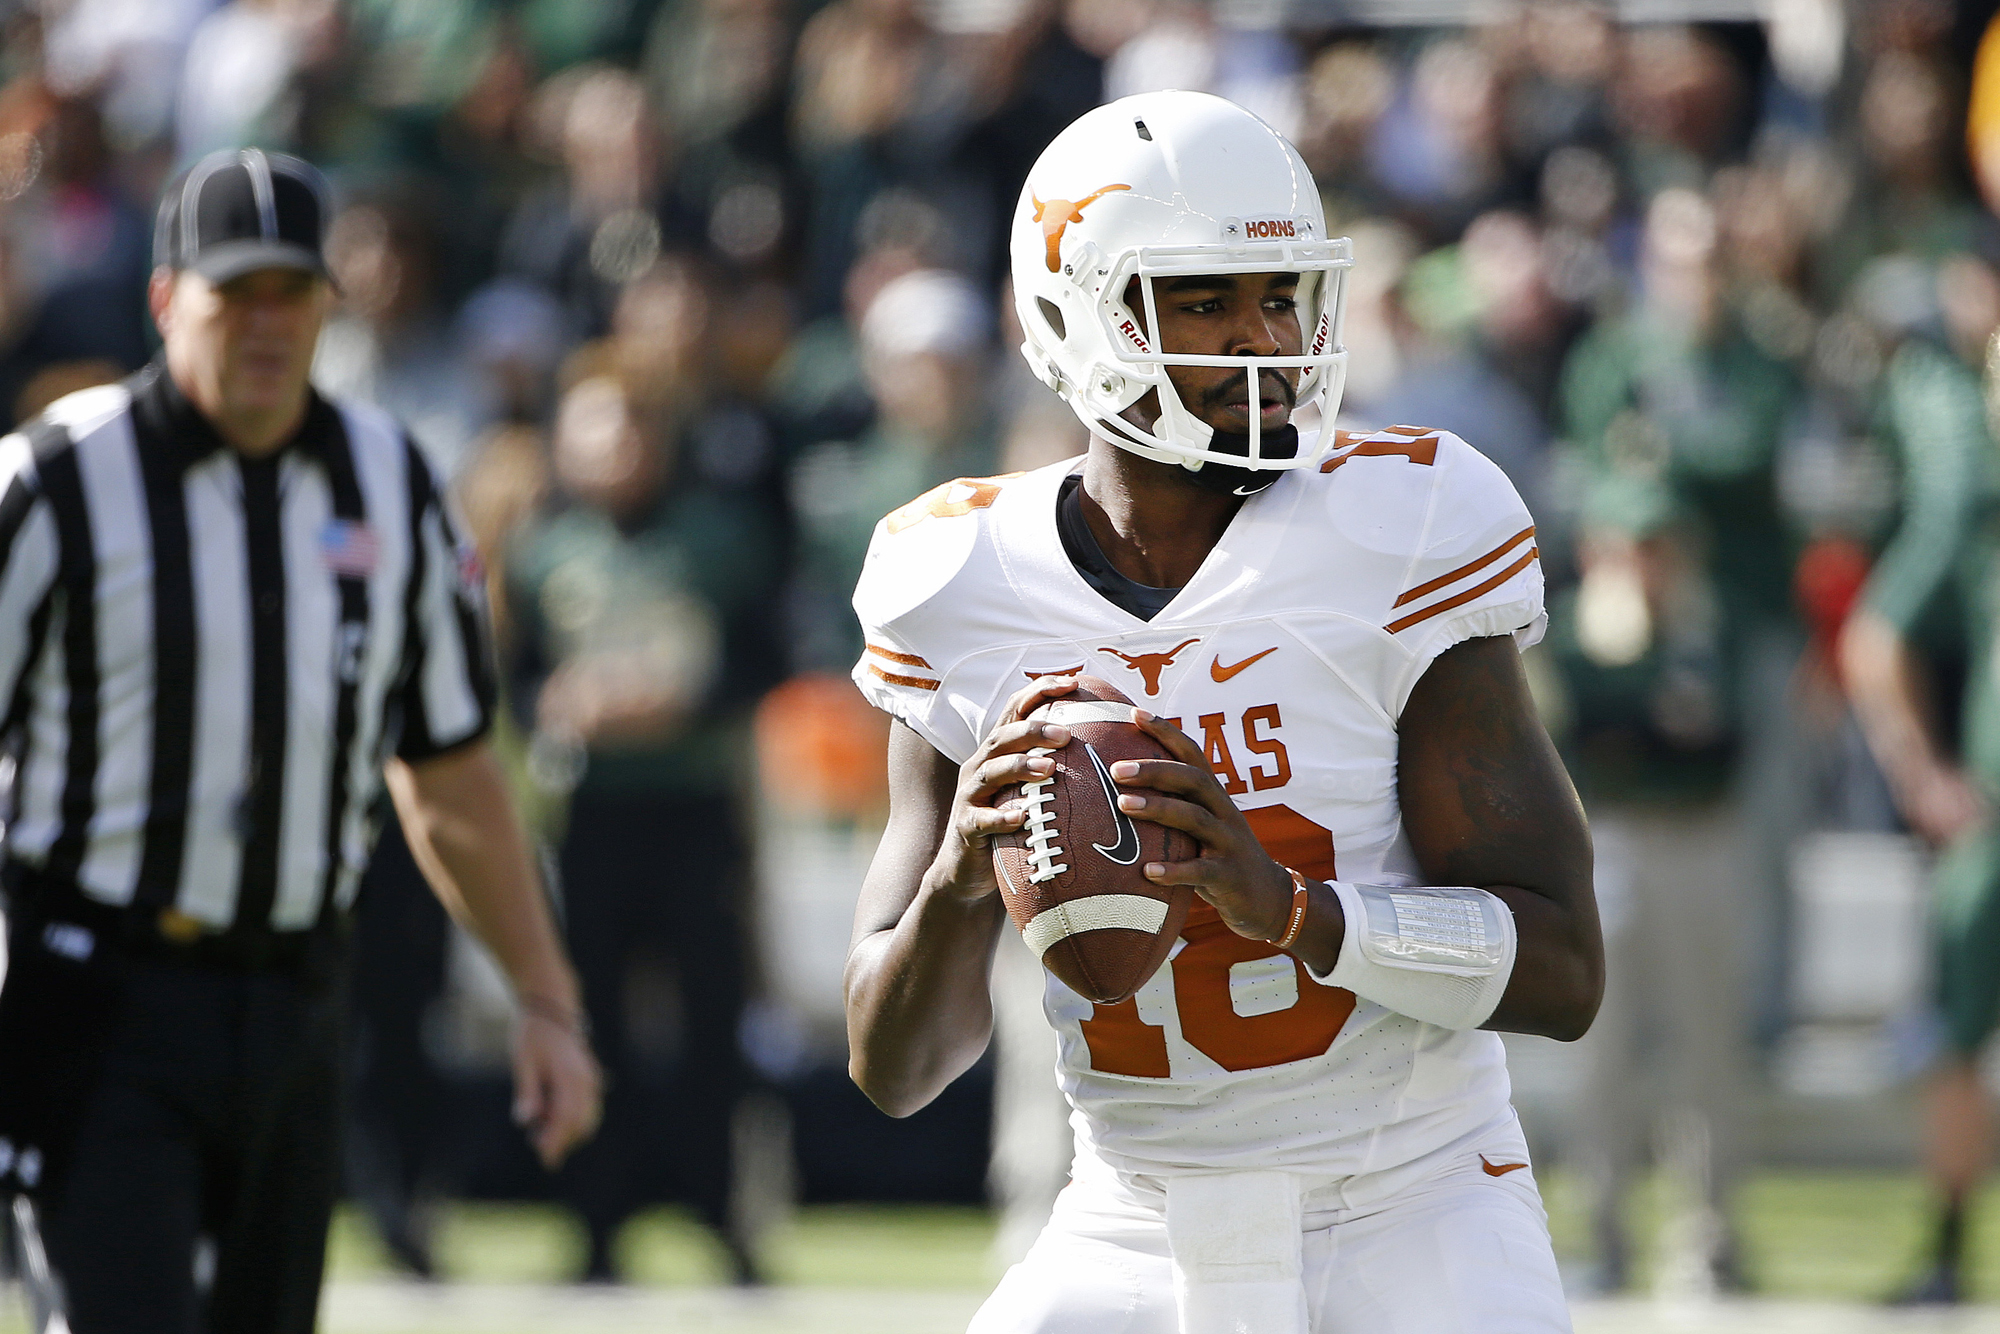 Tyrone Swoopes #18 of the Texas Longhorns looks for an open receiver against Shawn Oakman #2 of the Baylor Bears in the first quarter at McLane Stadium on December 5, 2015 in Waco, Texas.